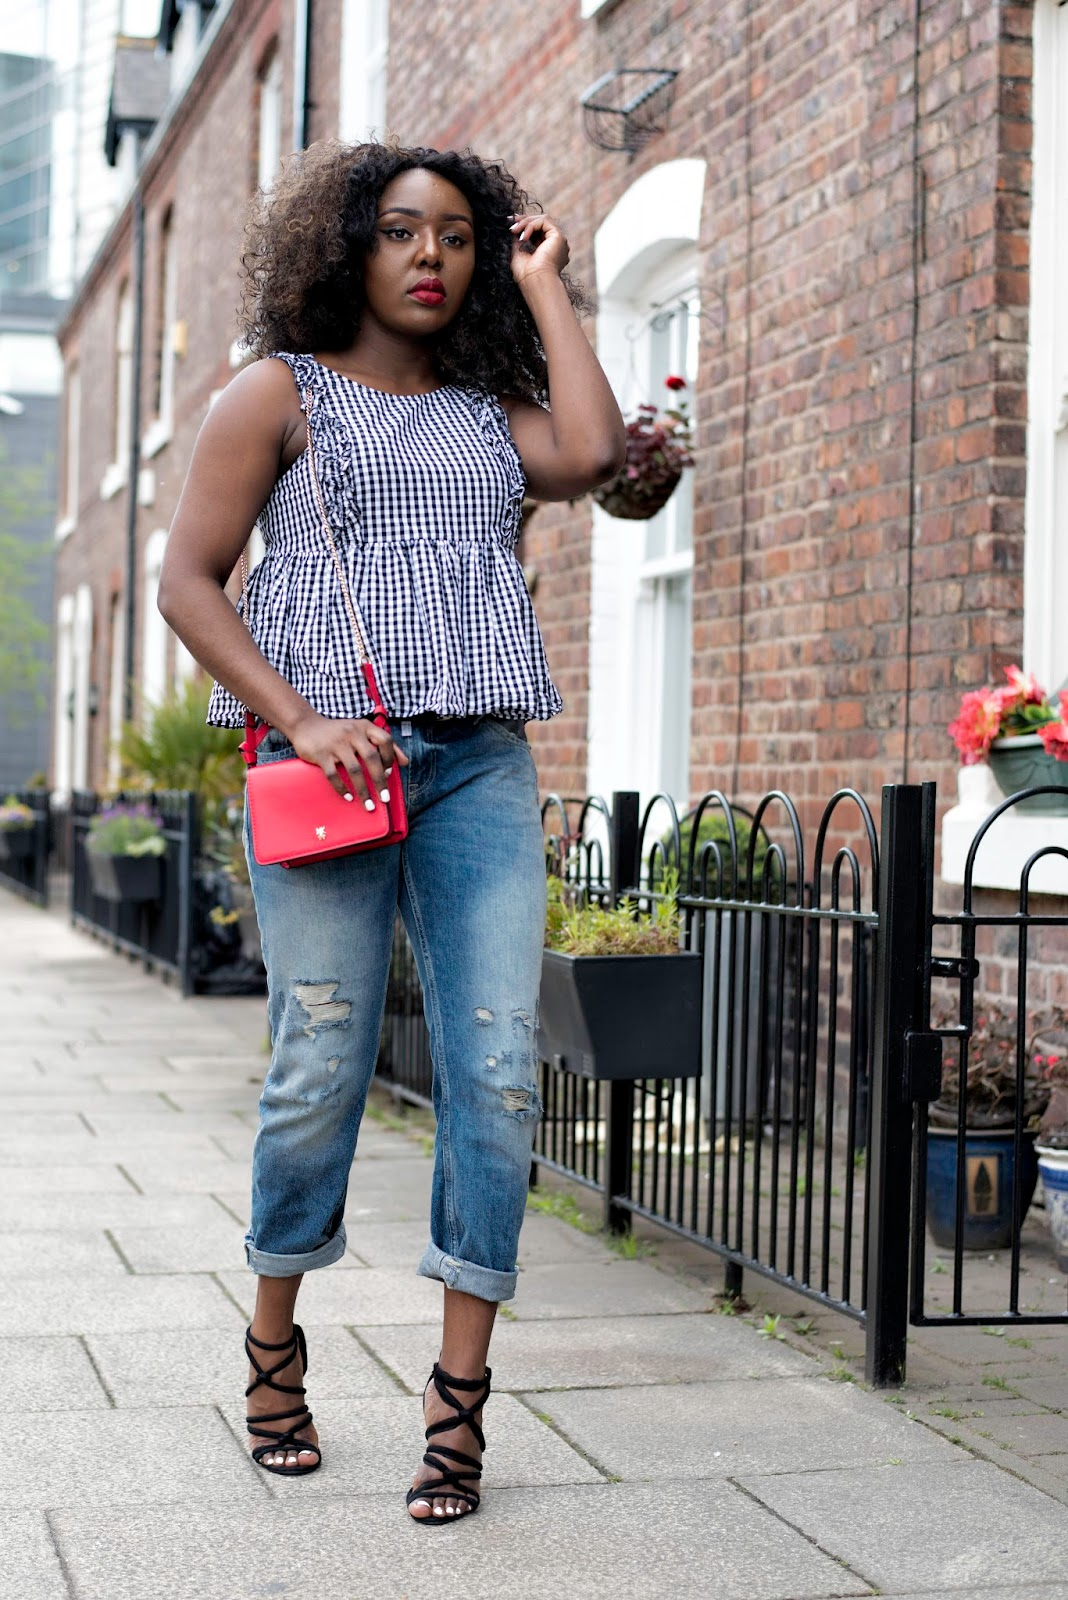 Stephylately is Pairing A Gingham Top with Boyfriend Jeans